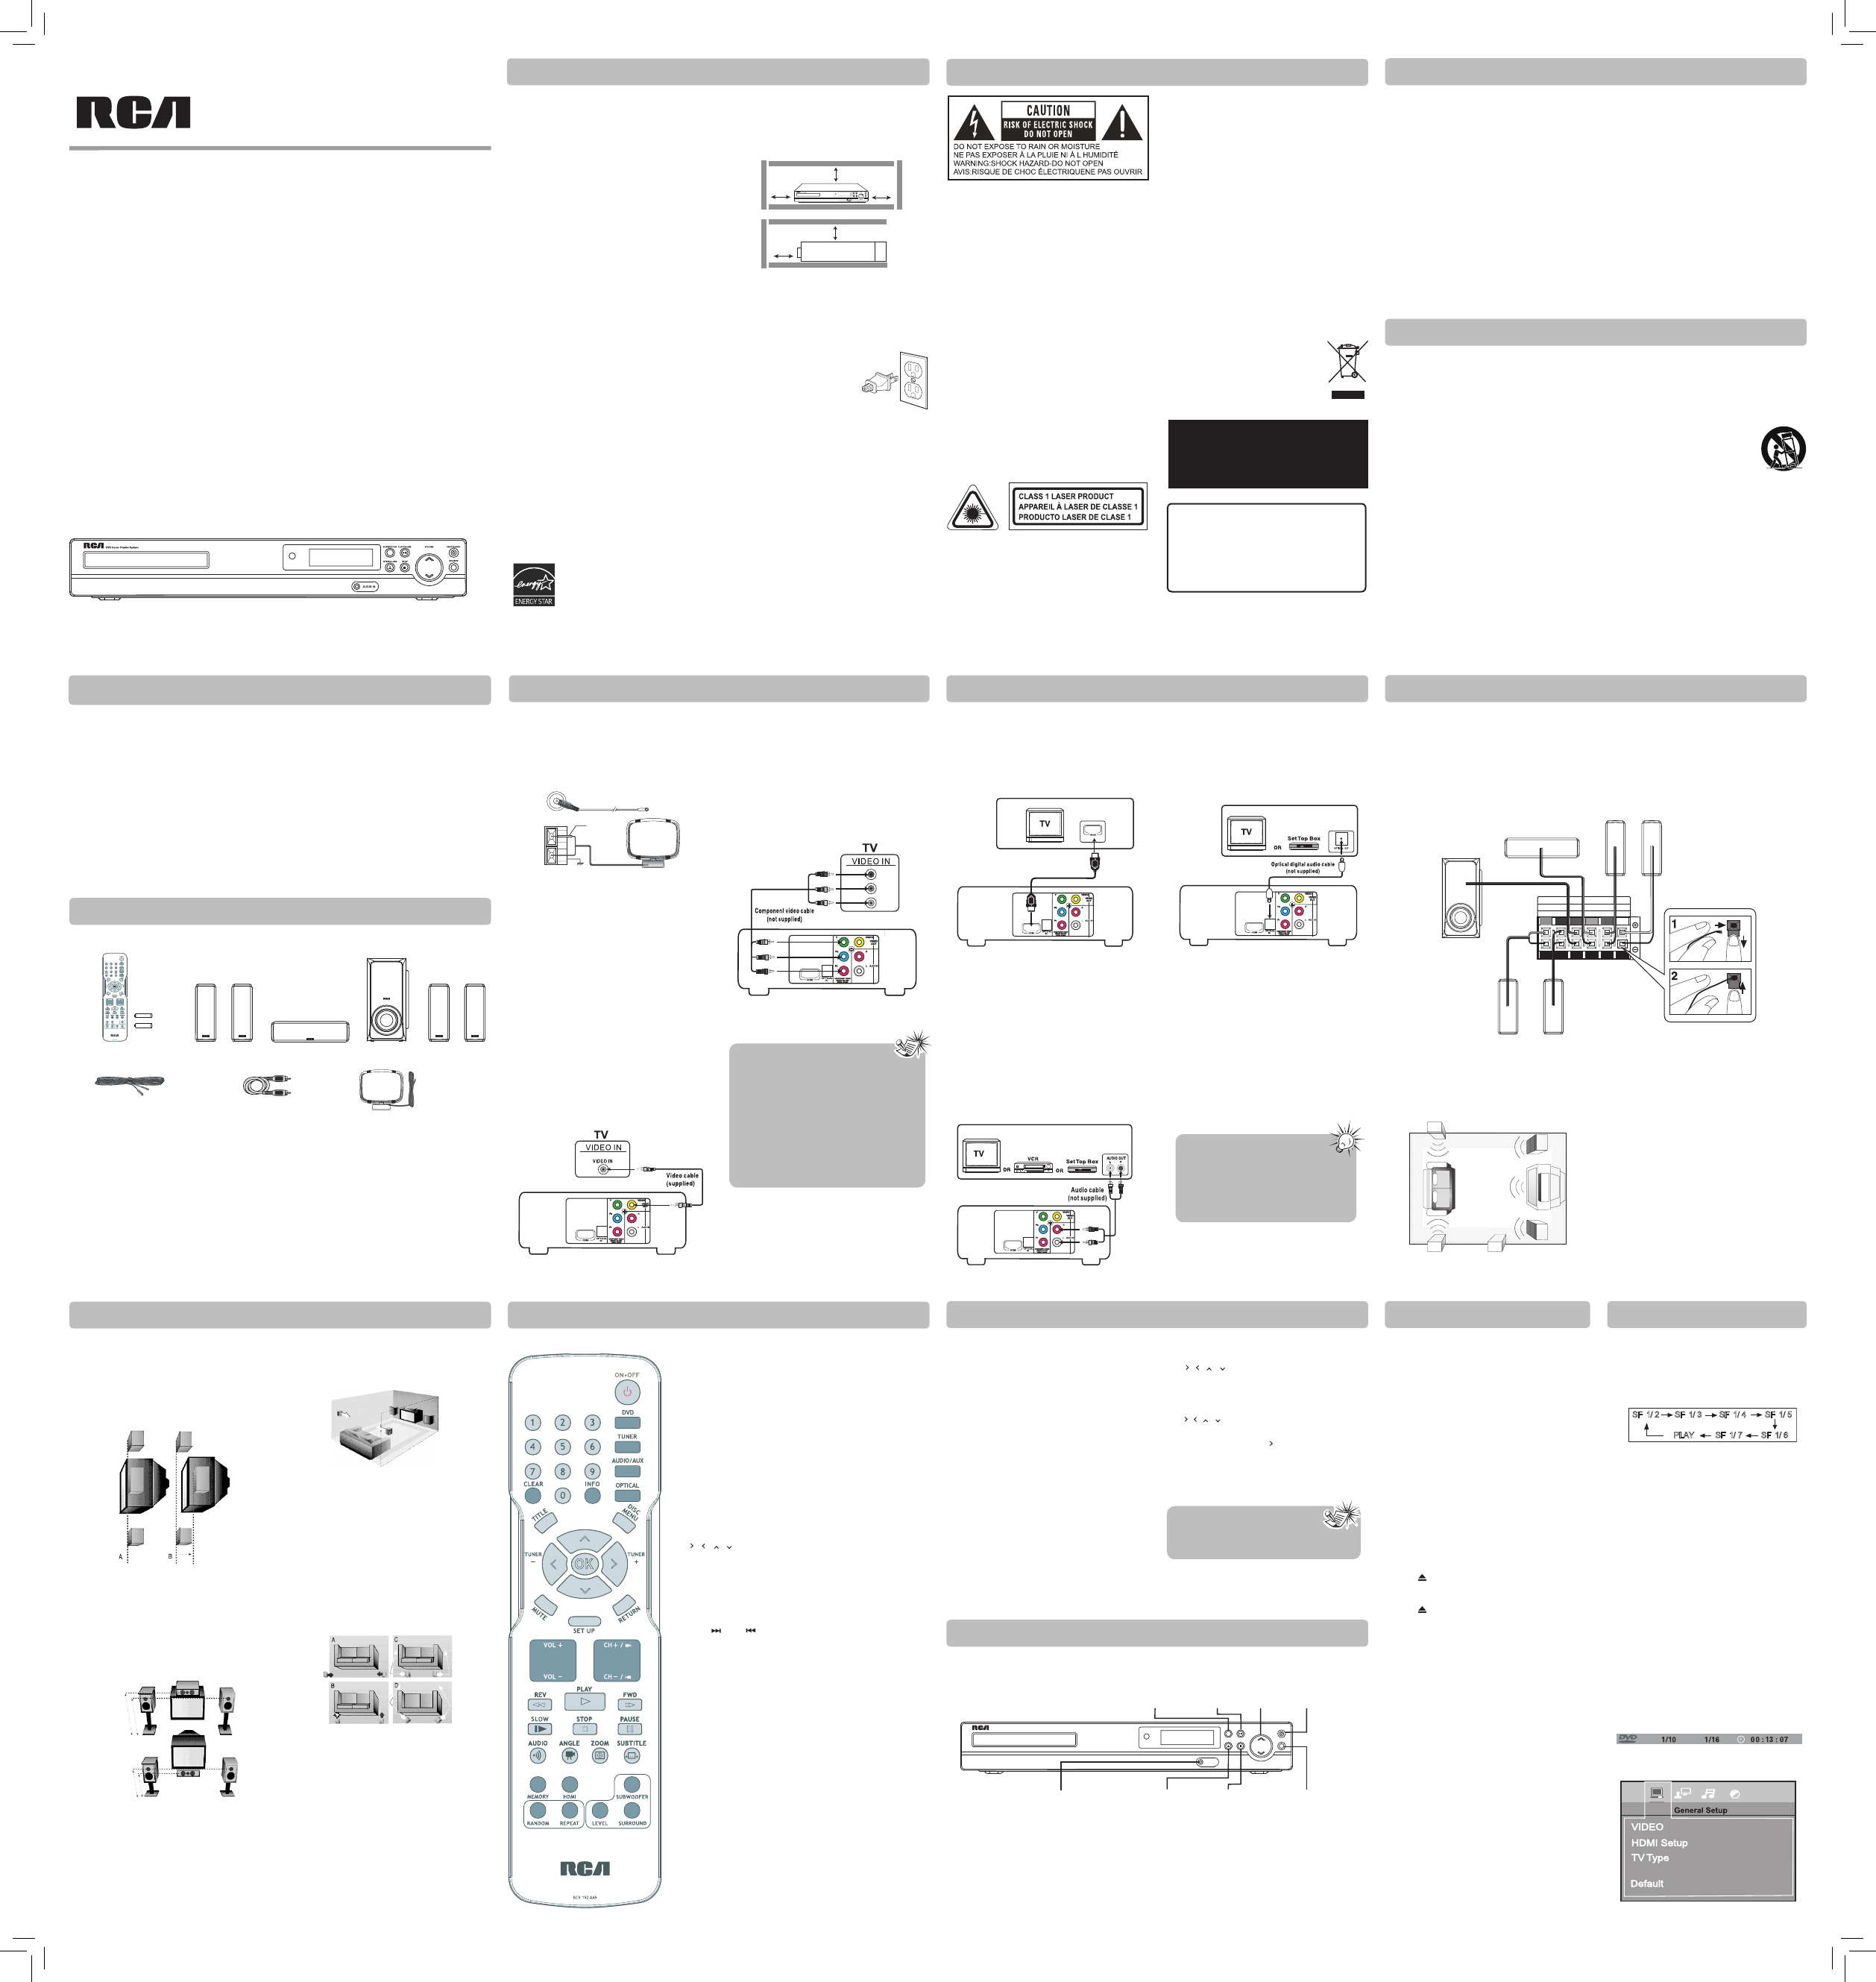 rca home theater system user manual. Black Bedroom Furniture Sets. Home Design Ideas